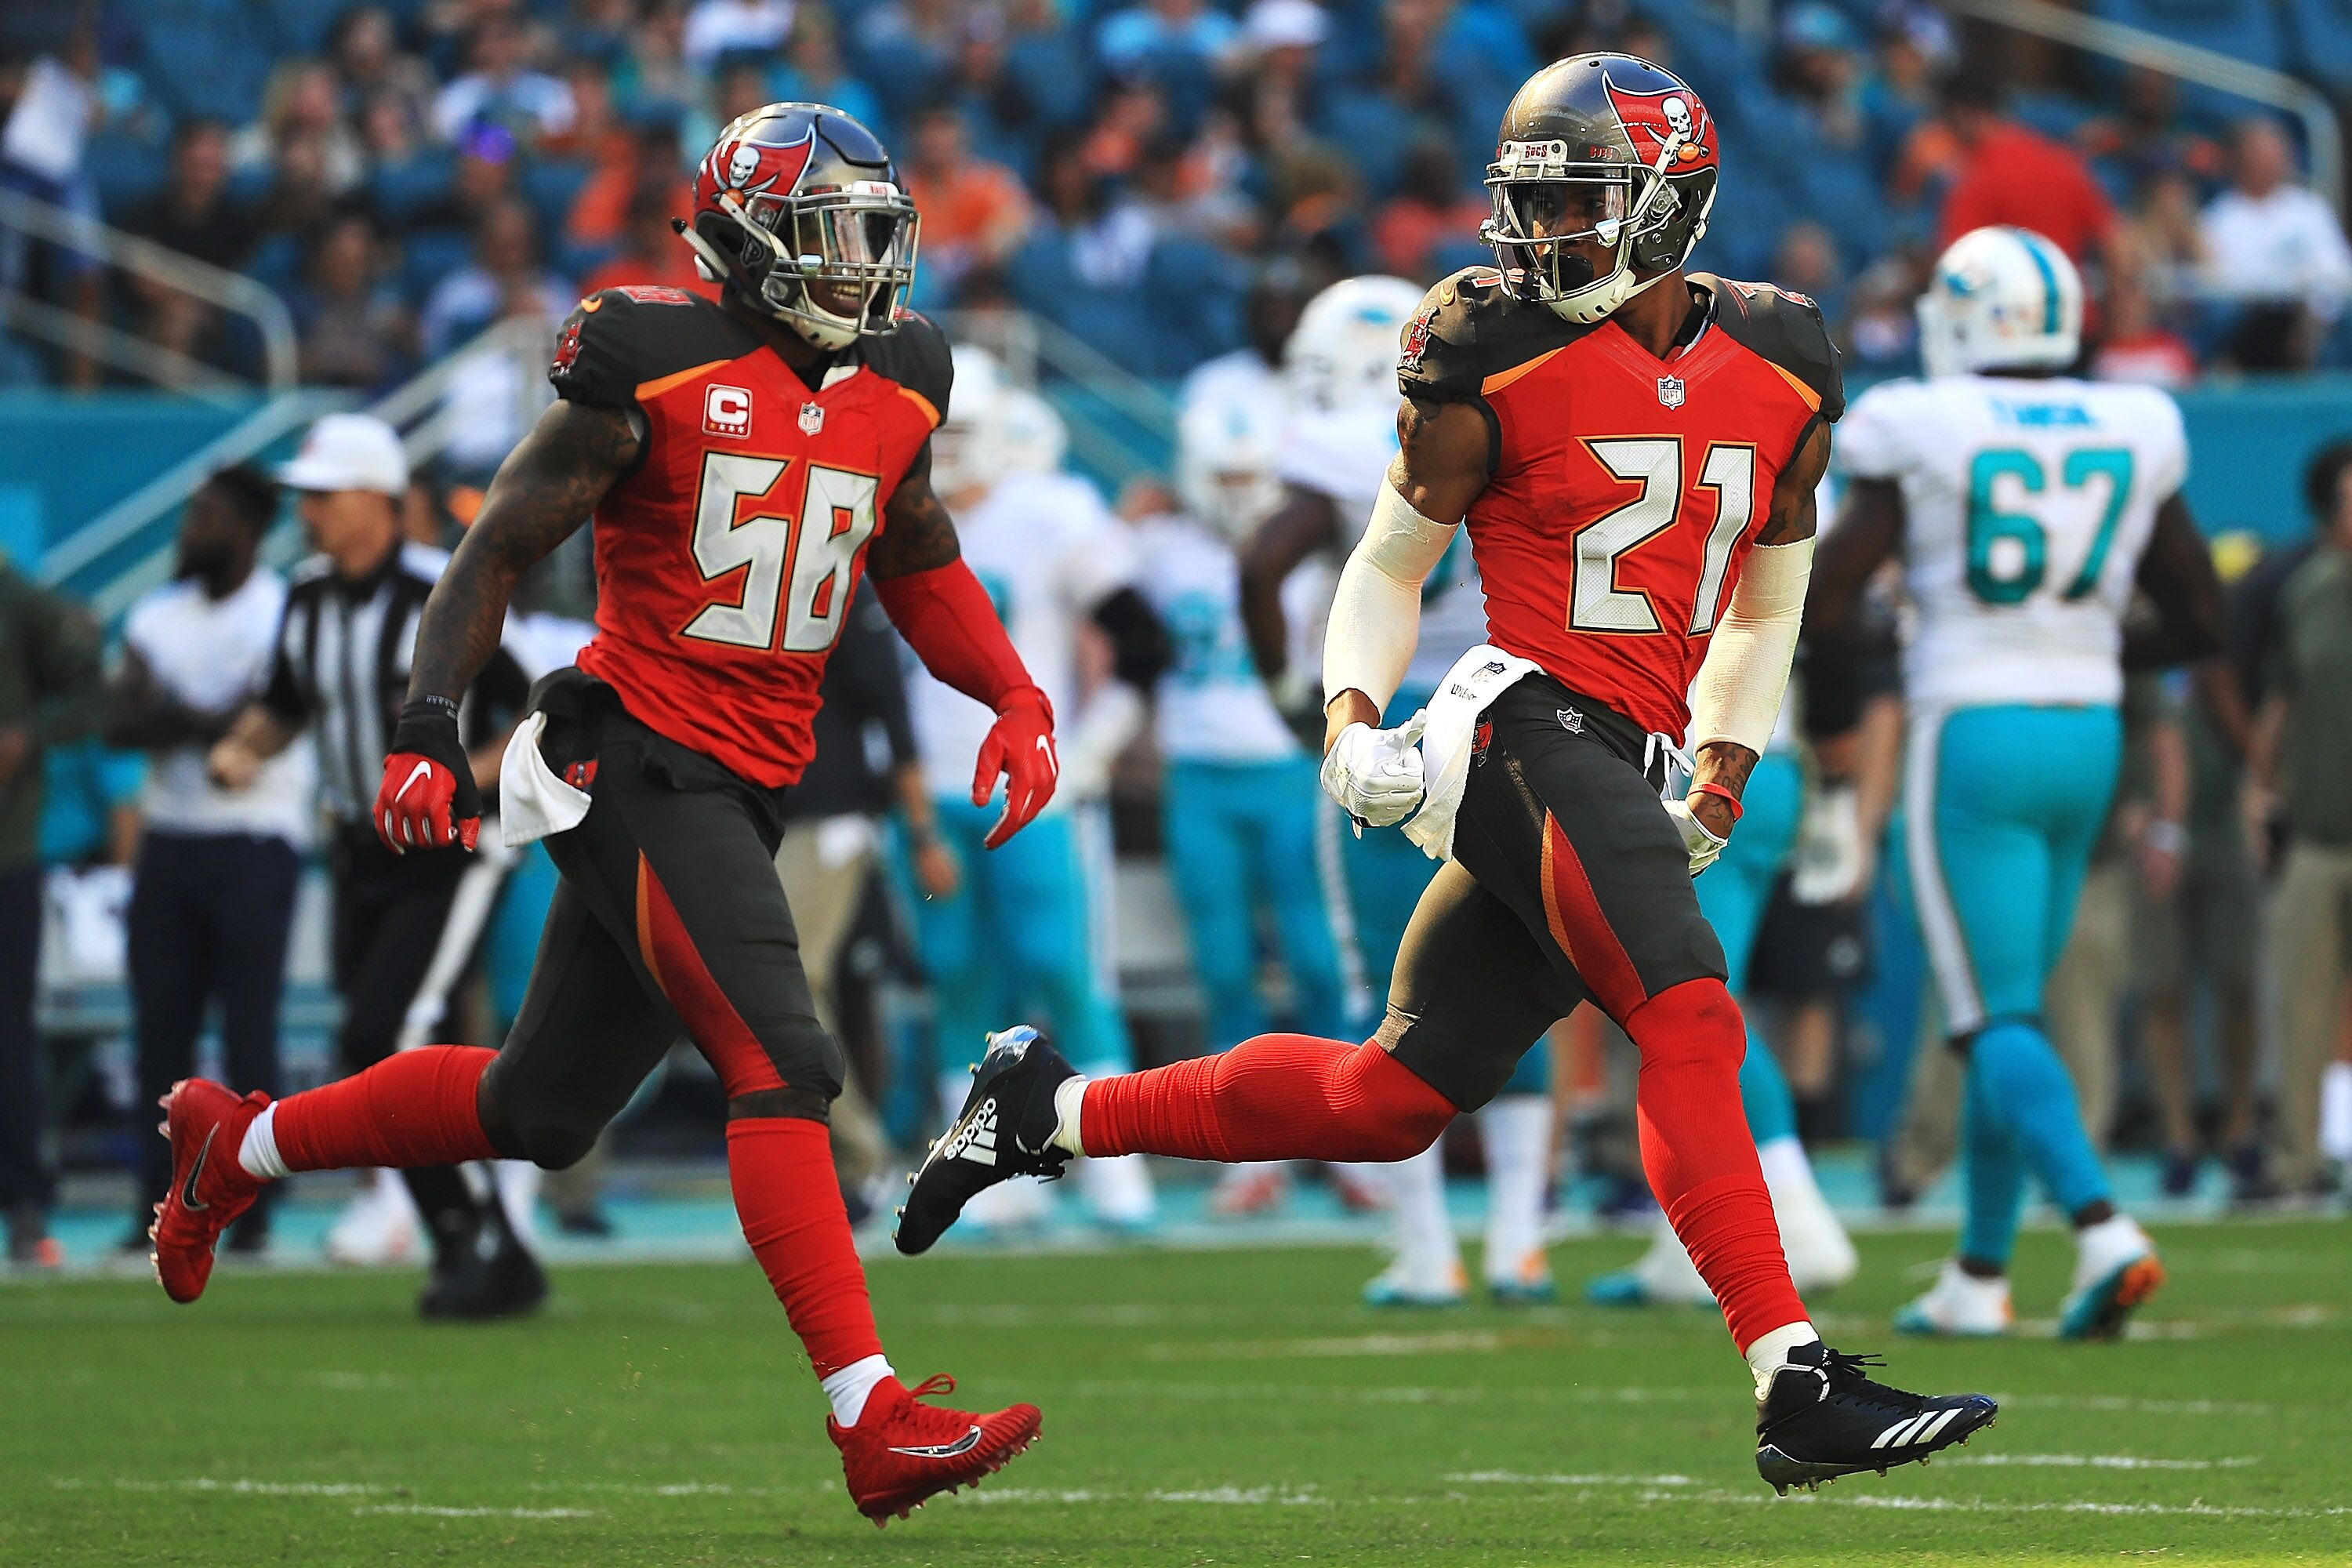 876331652-tampa-bay-buccaneers-v-miami-dolphin.jpg